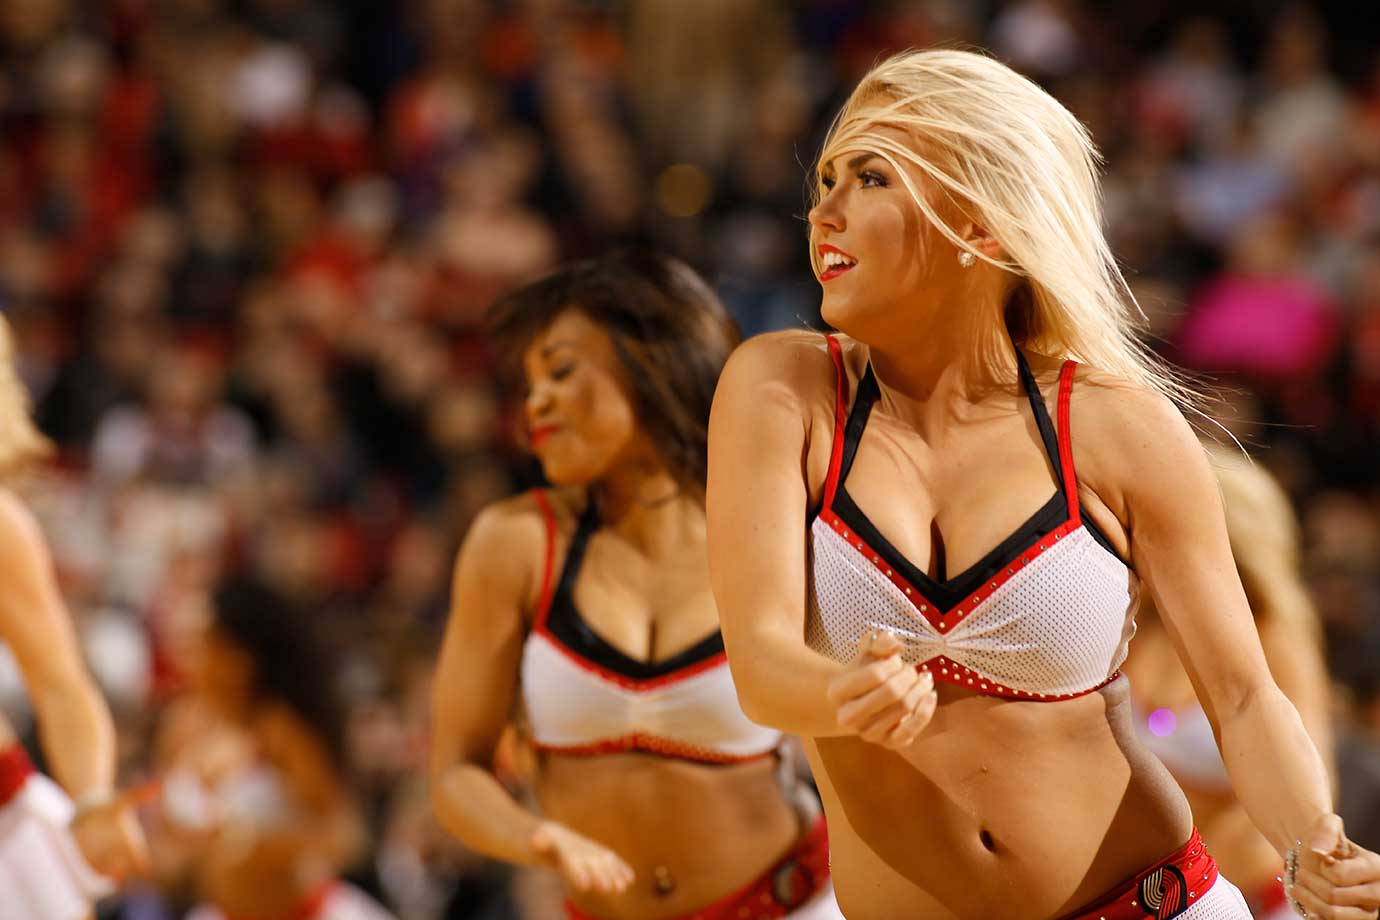 Dancers perform during the game between the Dallas Mavericks and Portland Trail Blazers.